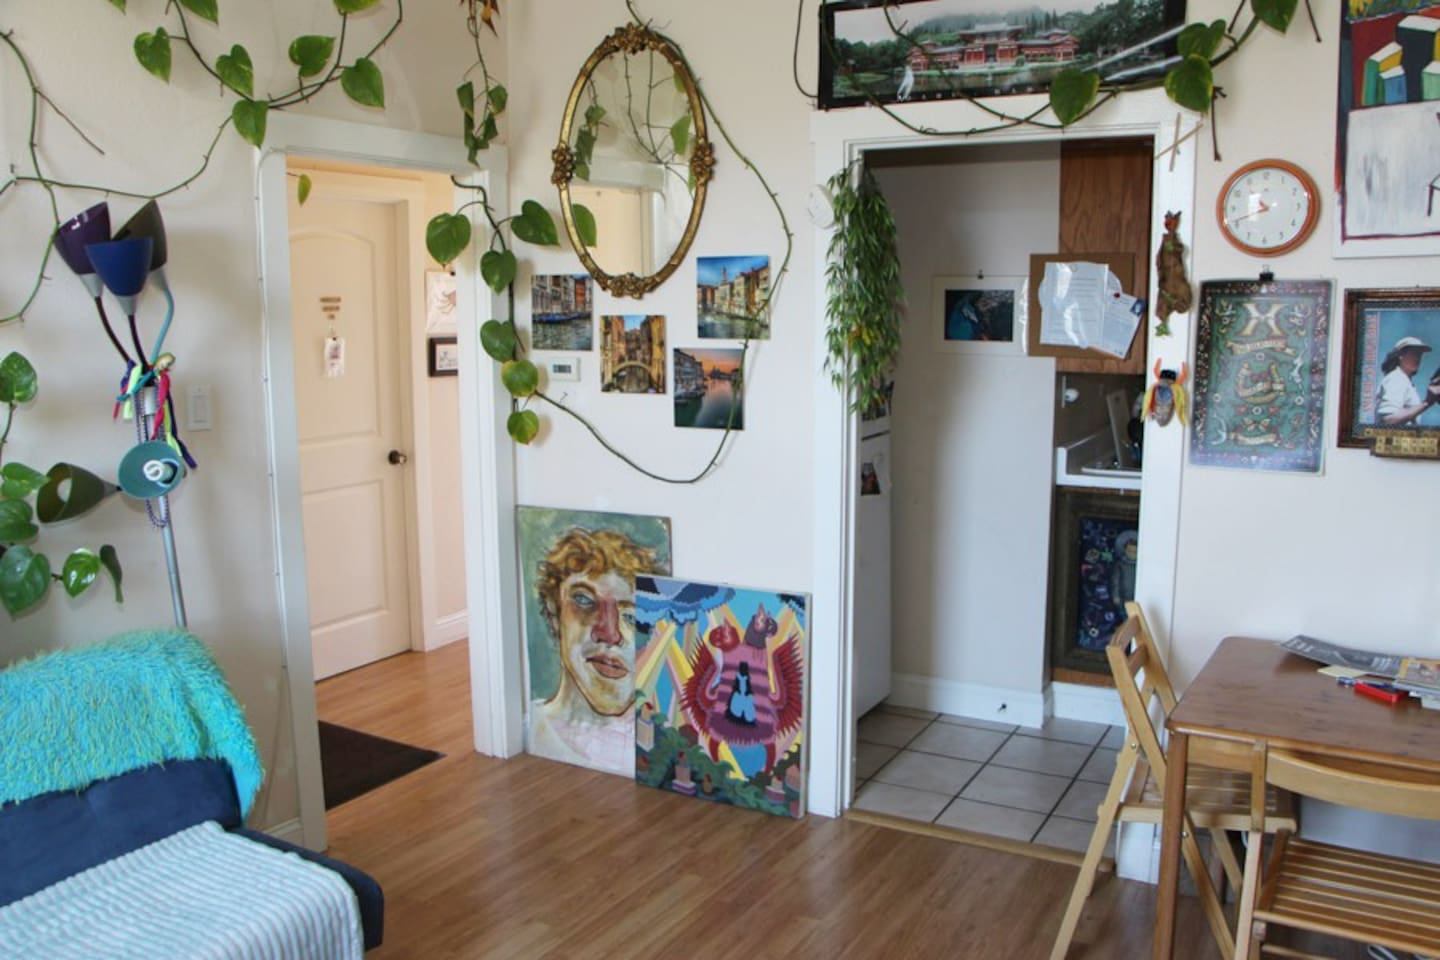 Awesome n cute  Bernal/ Mission rm  1 or 2 people